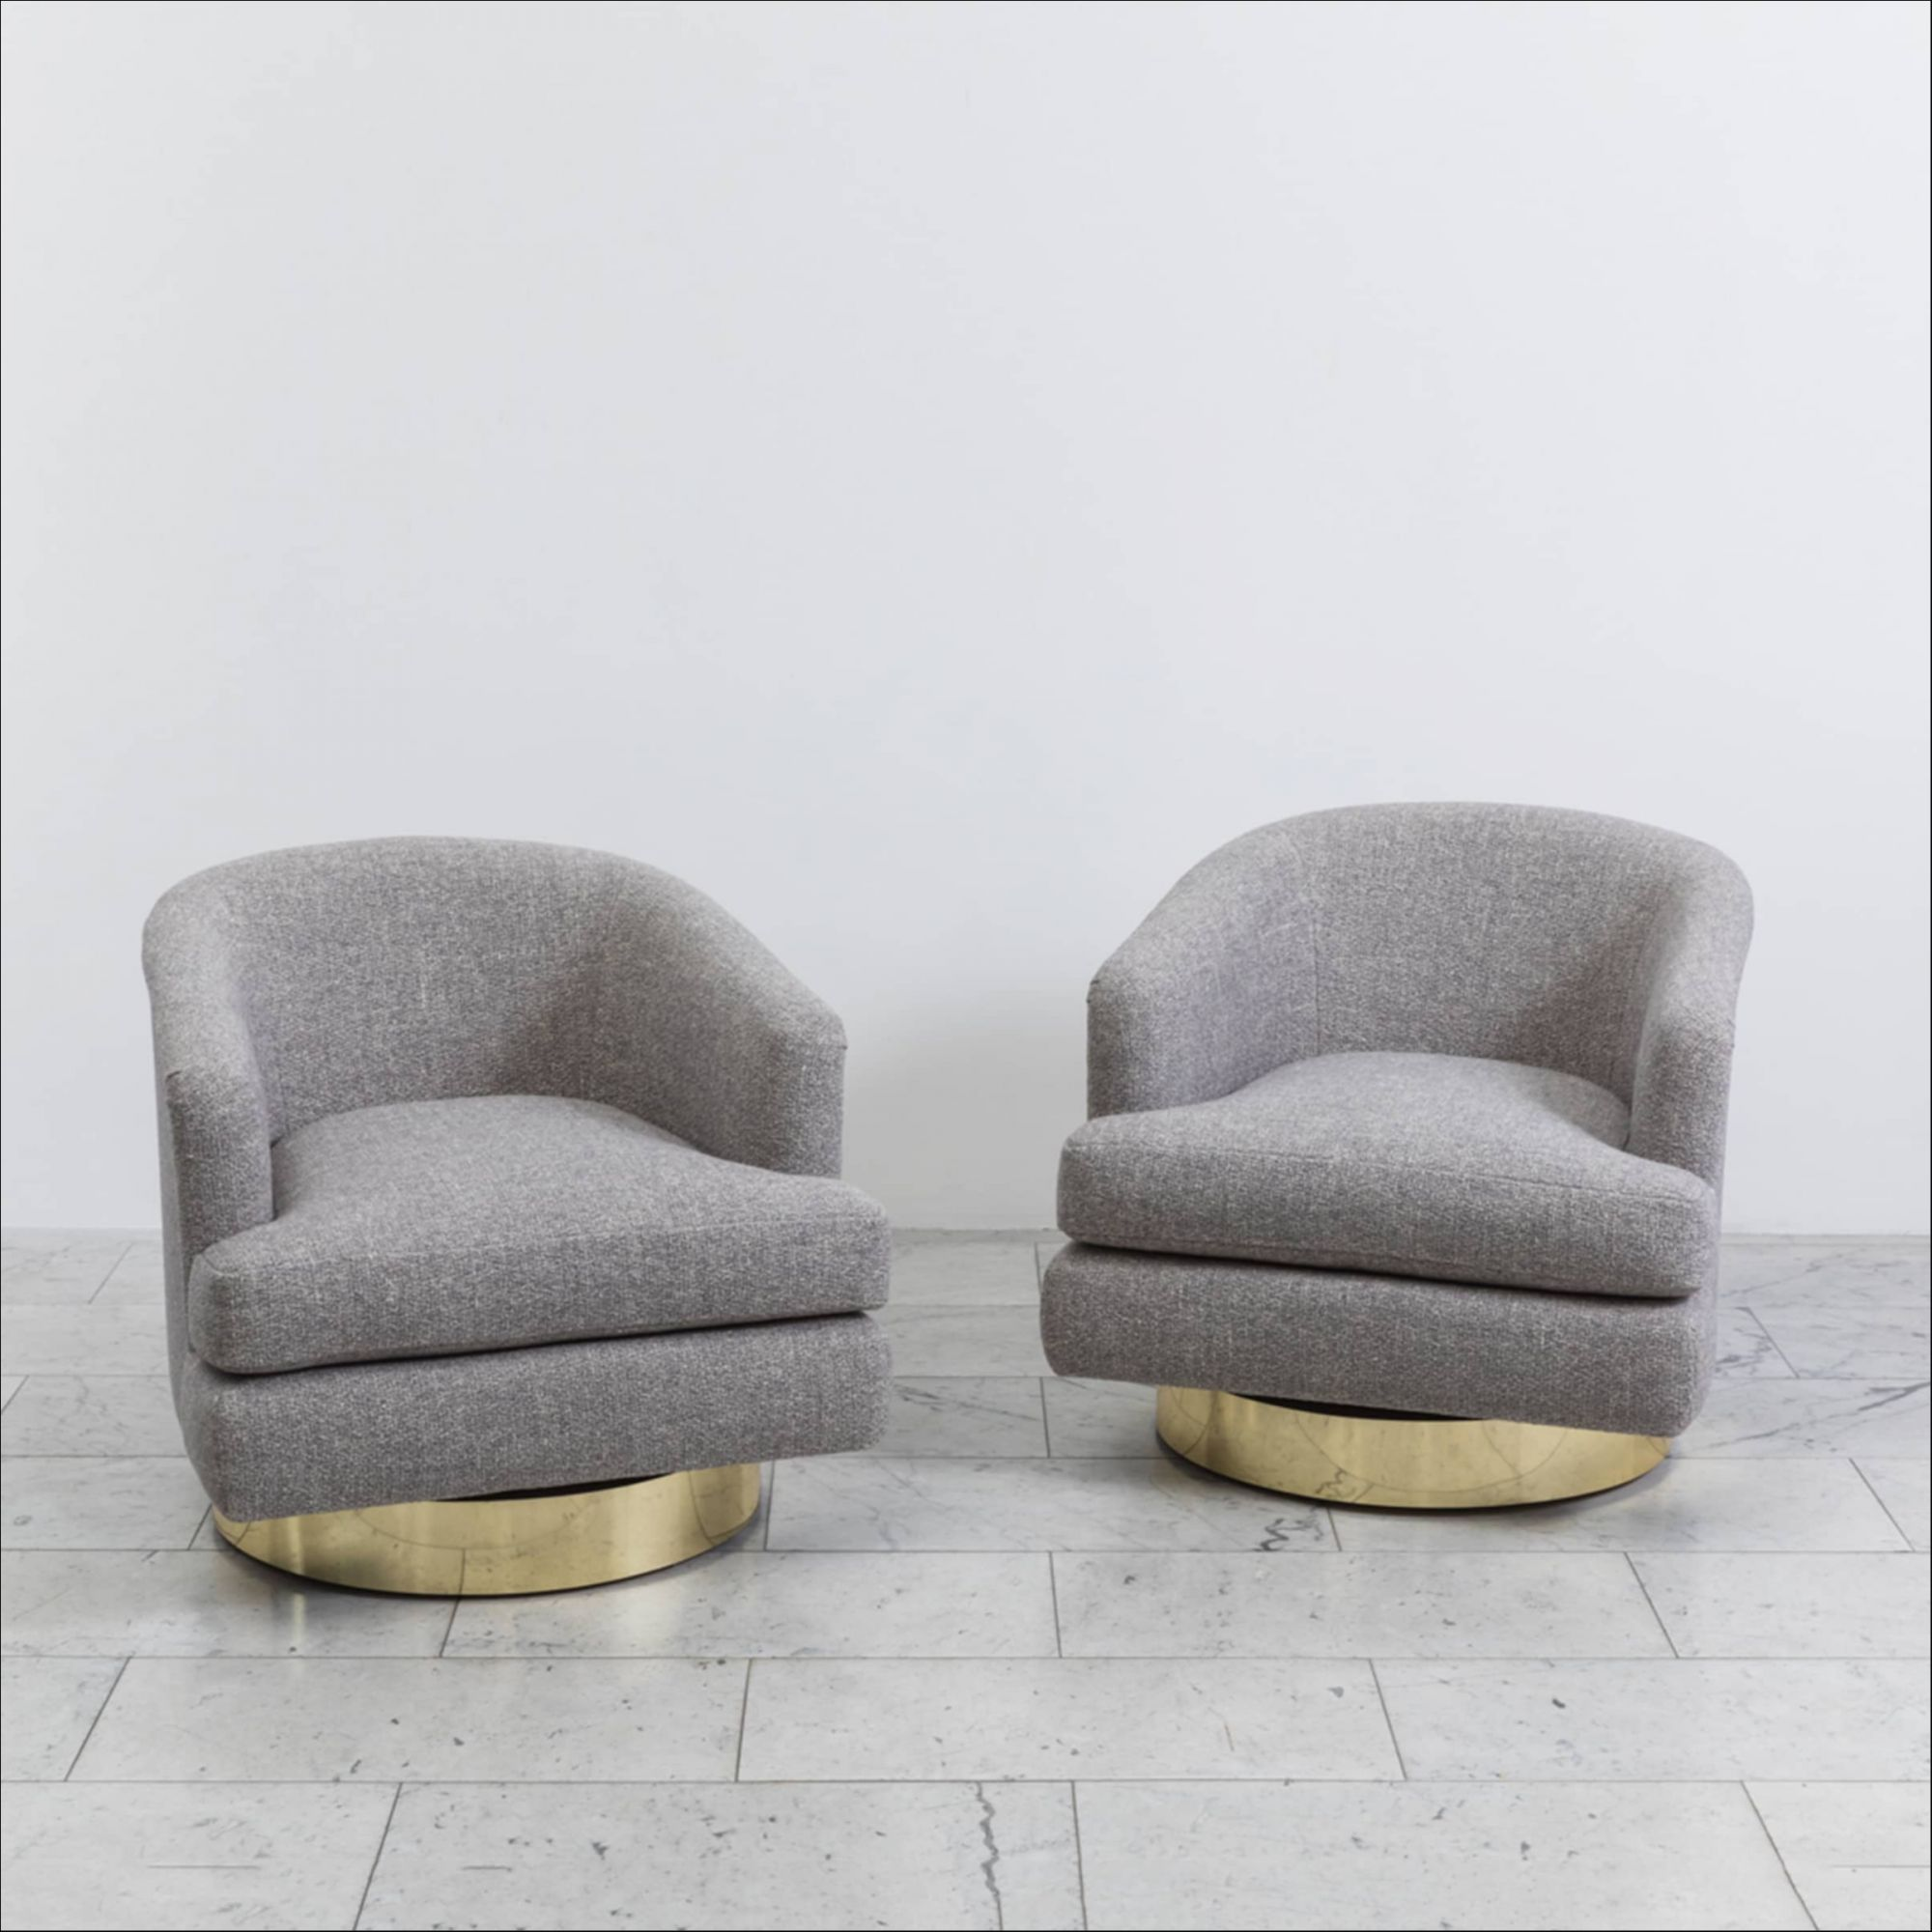 Sensational Milo Baughman Pair Of Grey Tweed Swivel Chairs With Brass Creativecarmelina Interior Chair Design Creativecarmelinacom